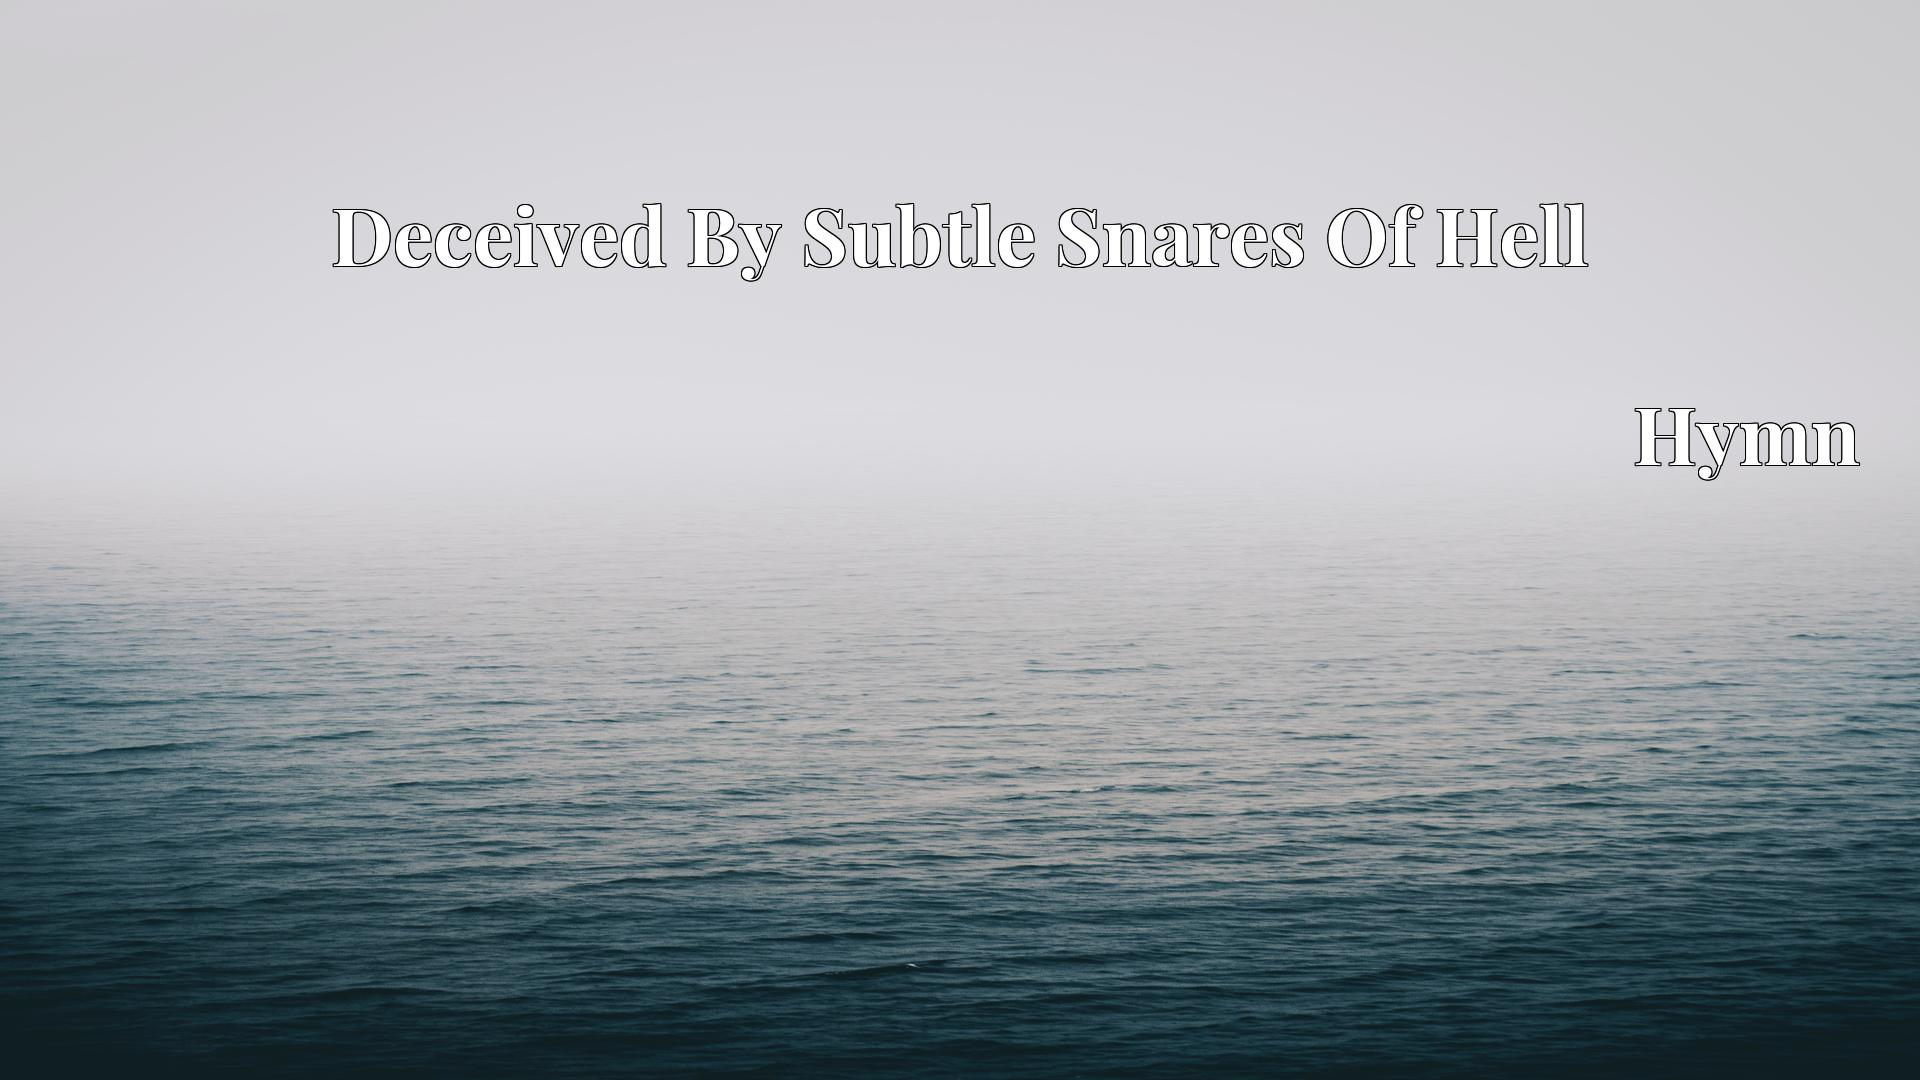 Deceived By Subtle Snares Of Hell - Hymn